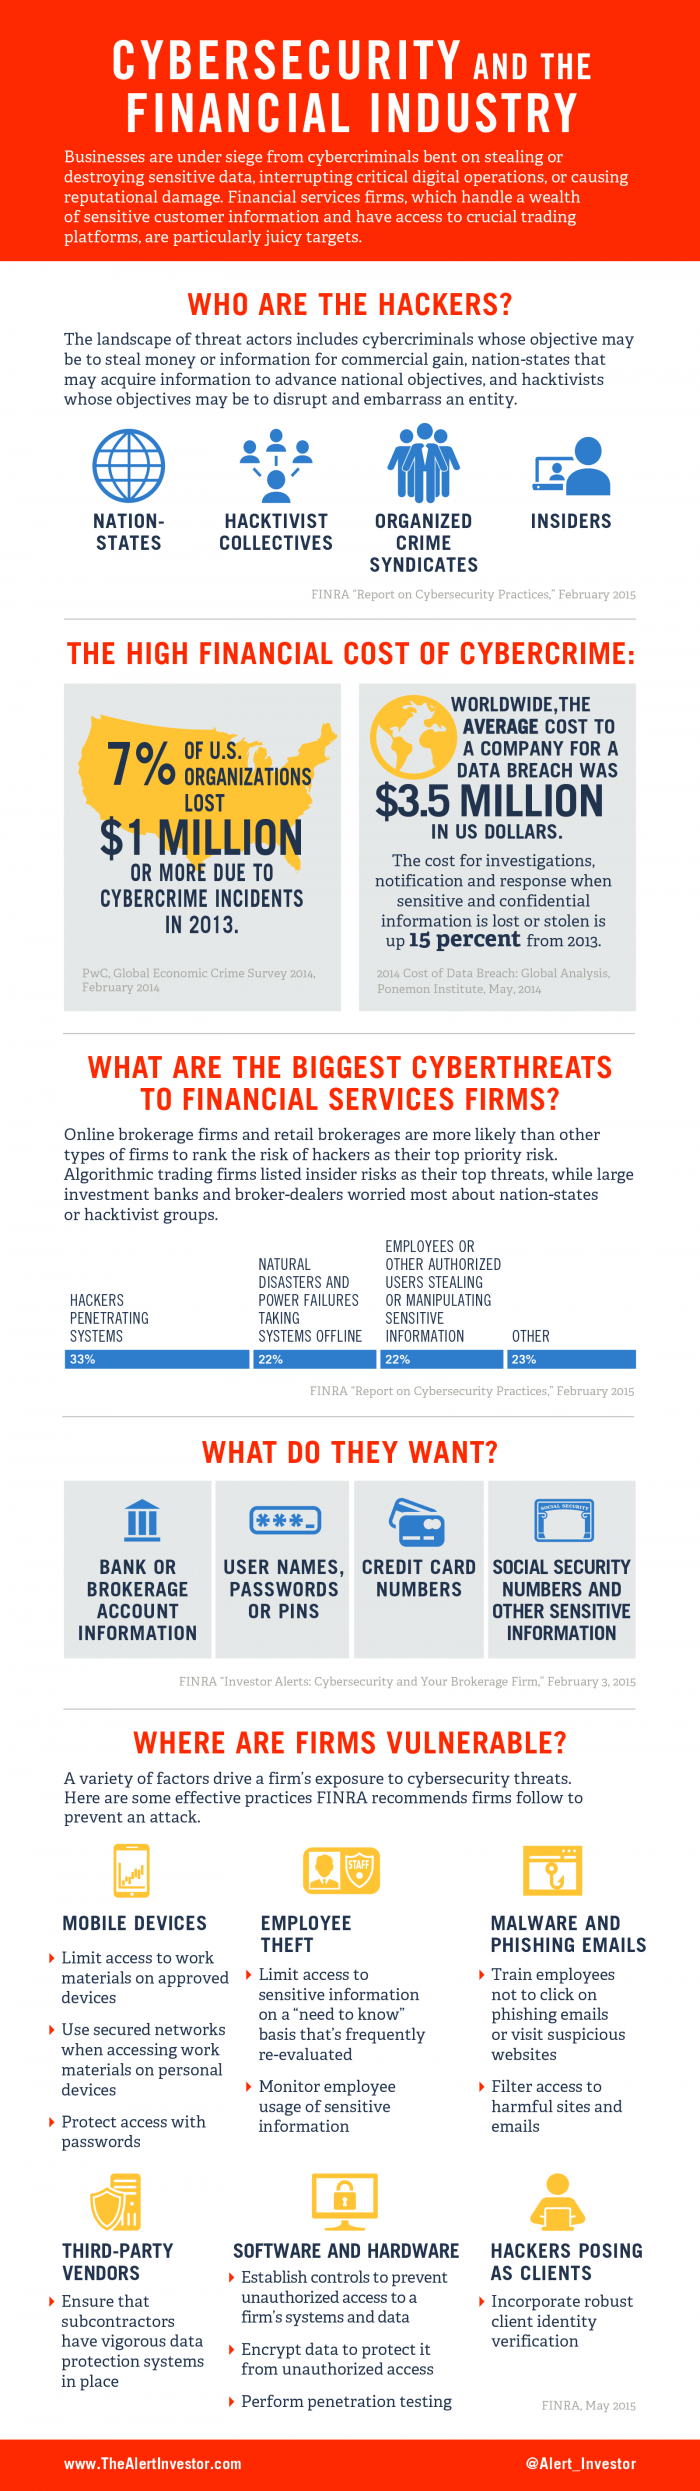 Infographic: Cybersecurity and the Financial Industry